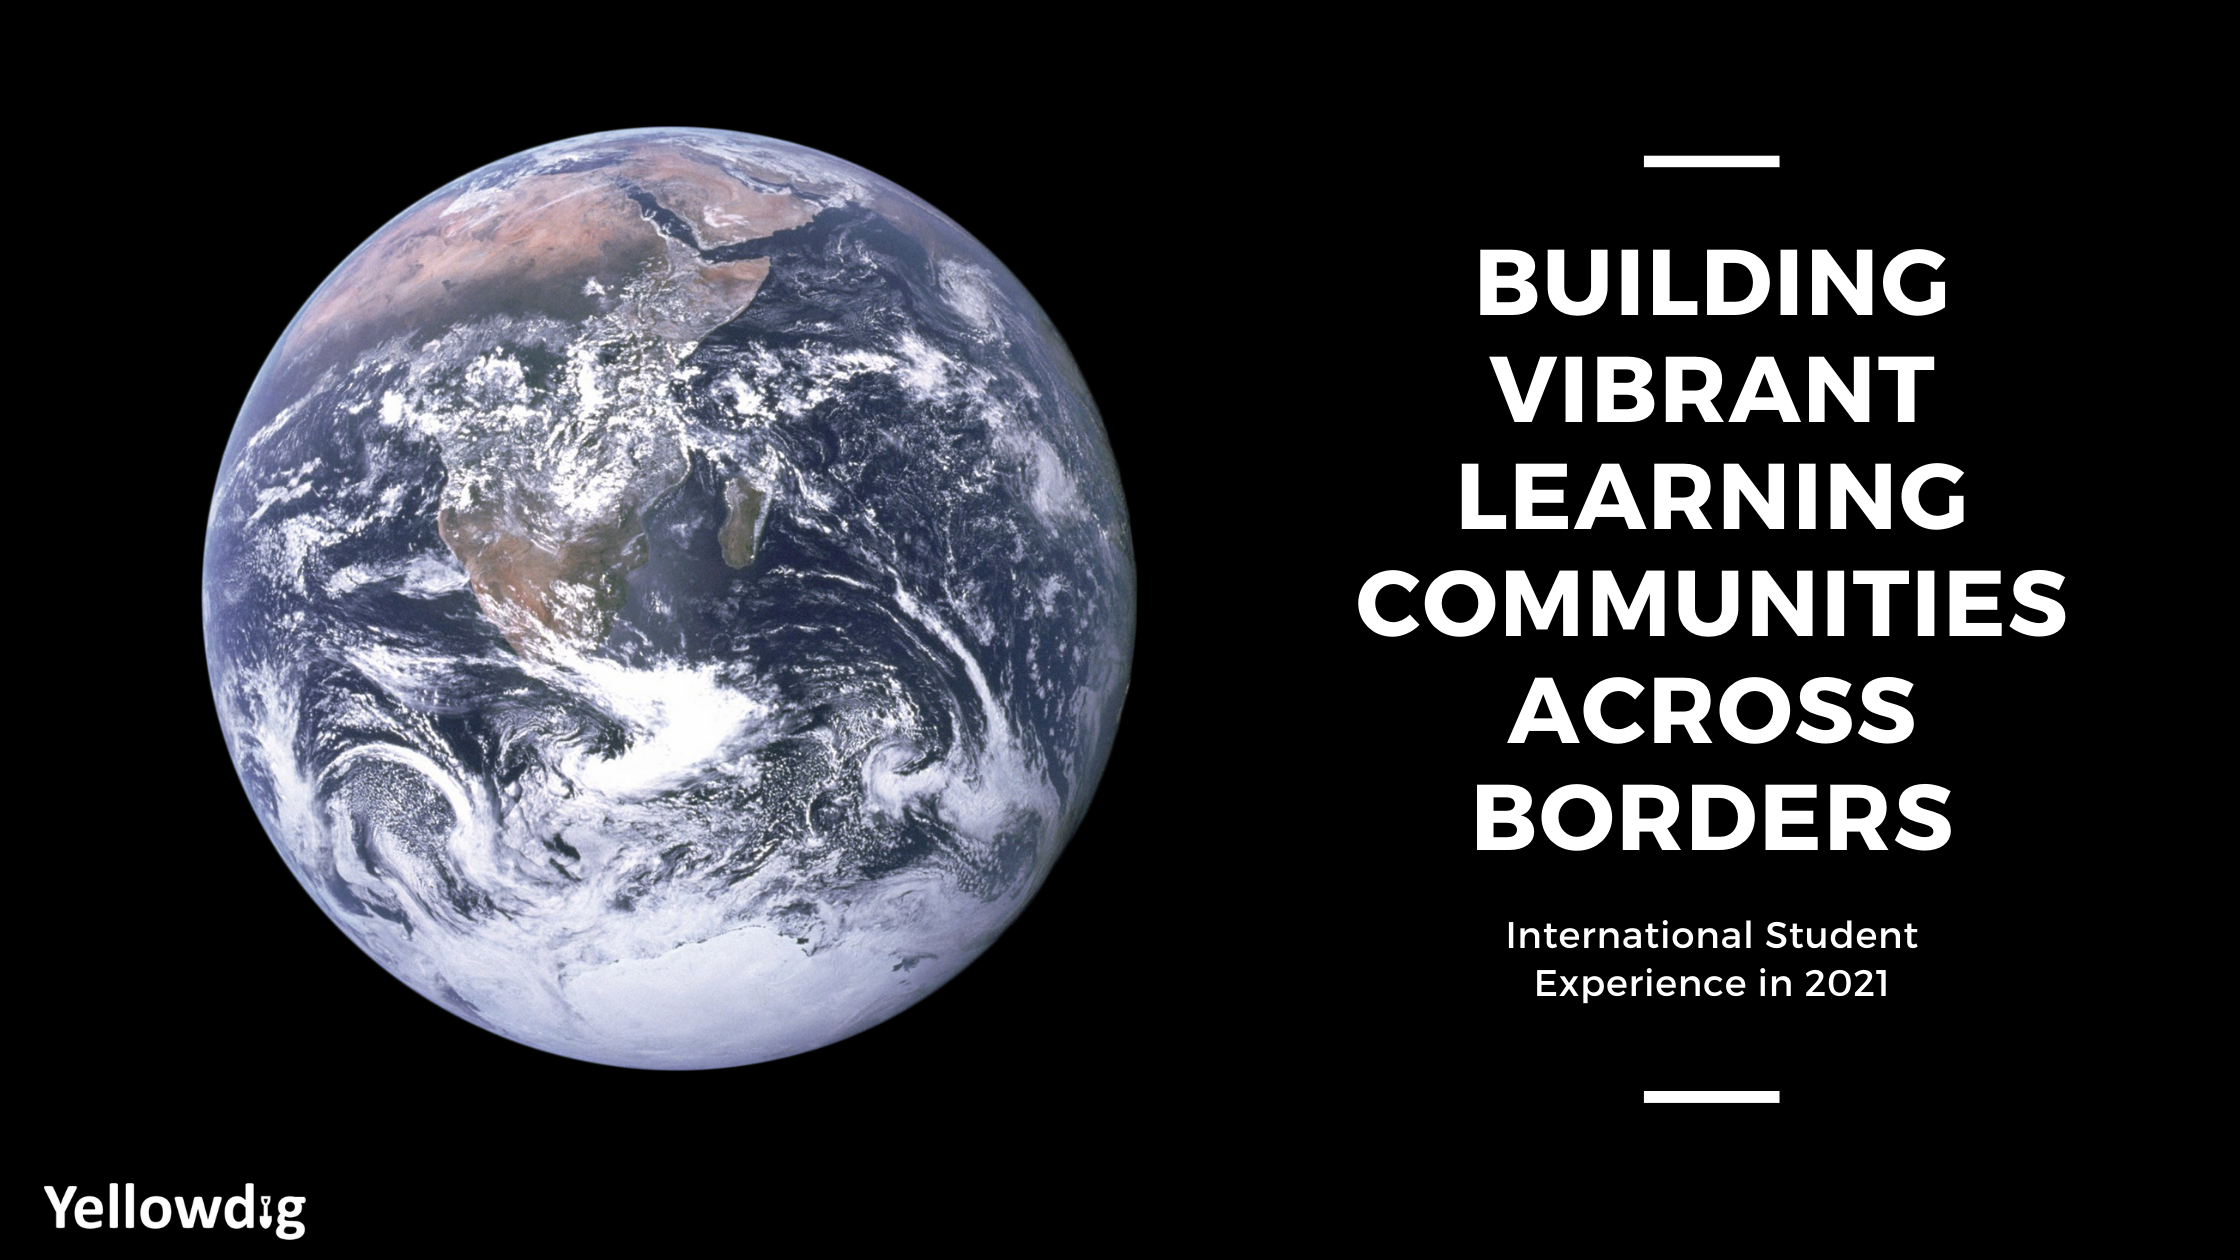 """Earth image - """"Building Vibrant Learning Communities across boarders, International student experience in 2021"""""""